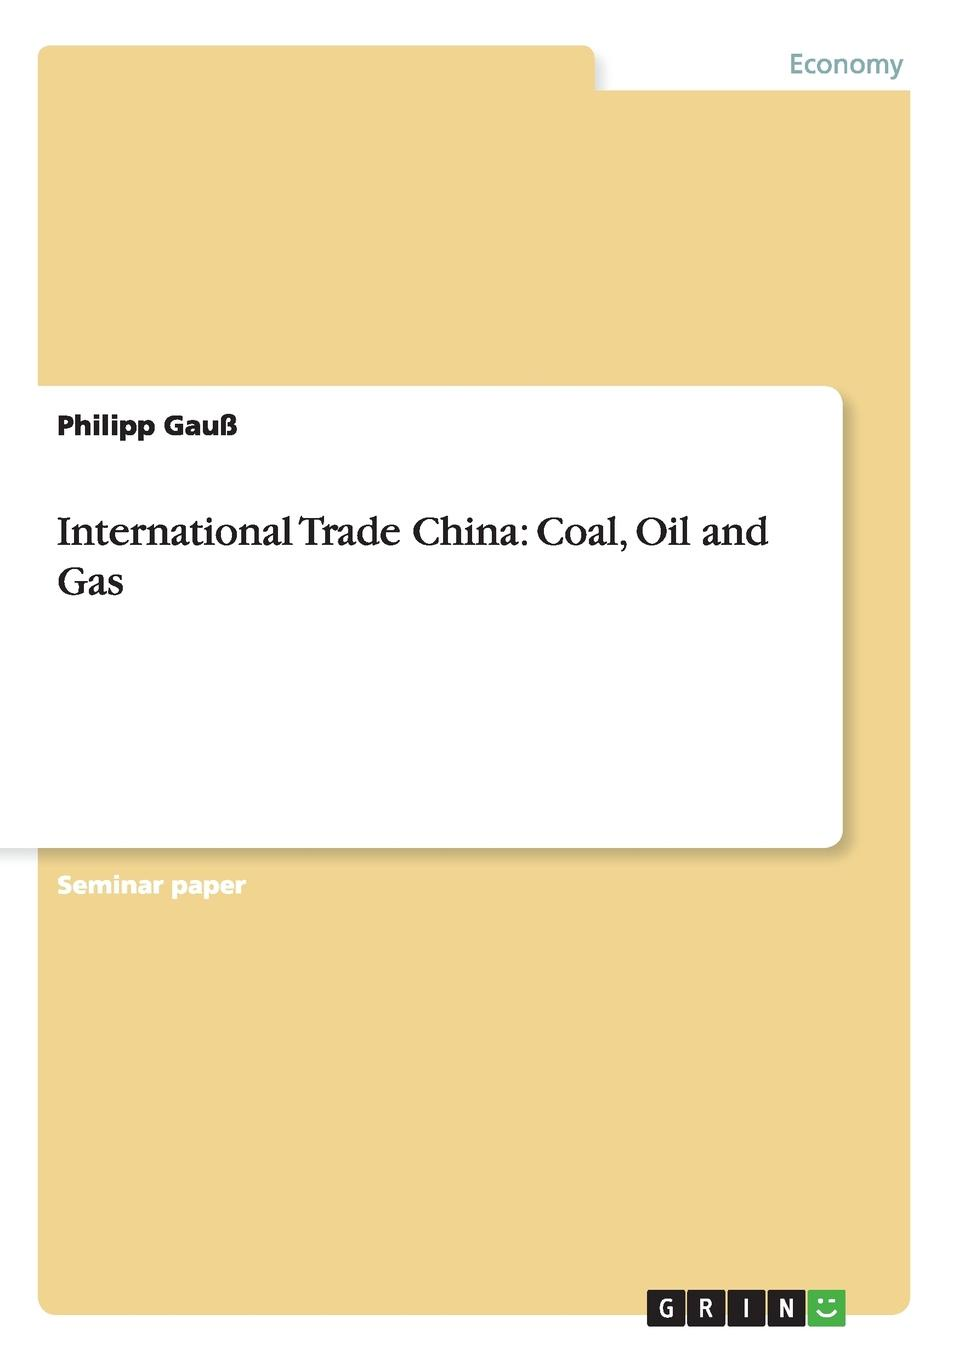 Philipp Gauß International Trade China. Coal, Oil and Gas